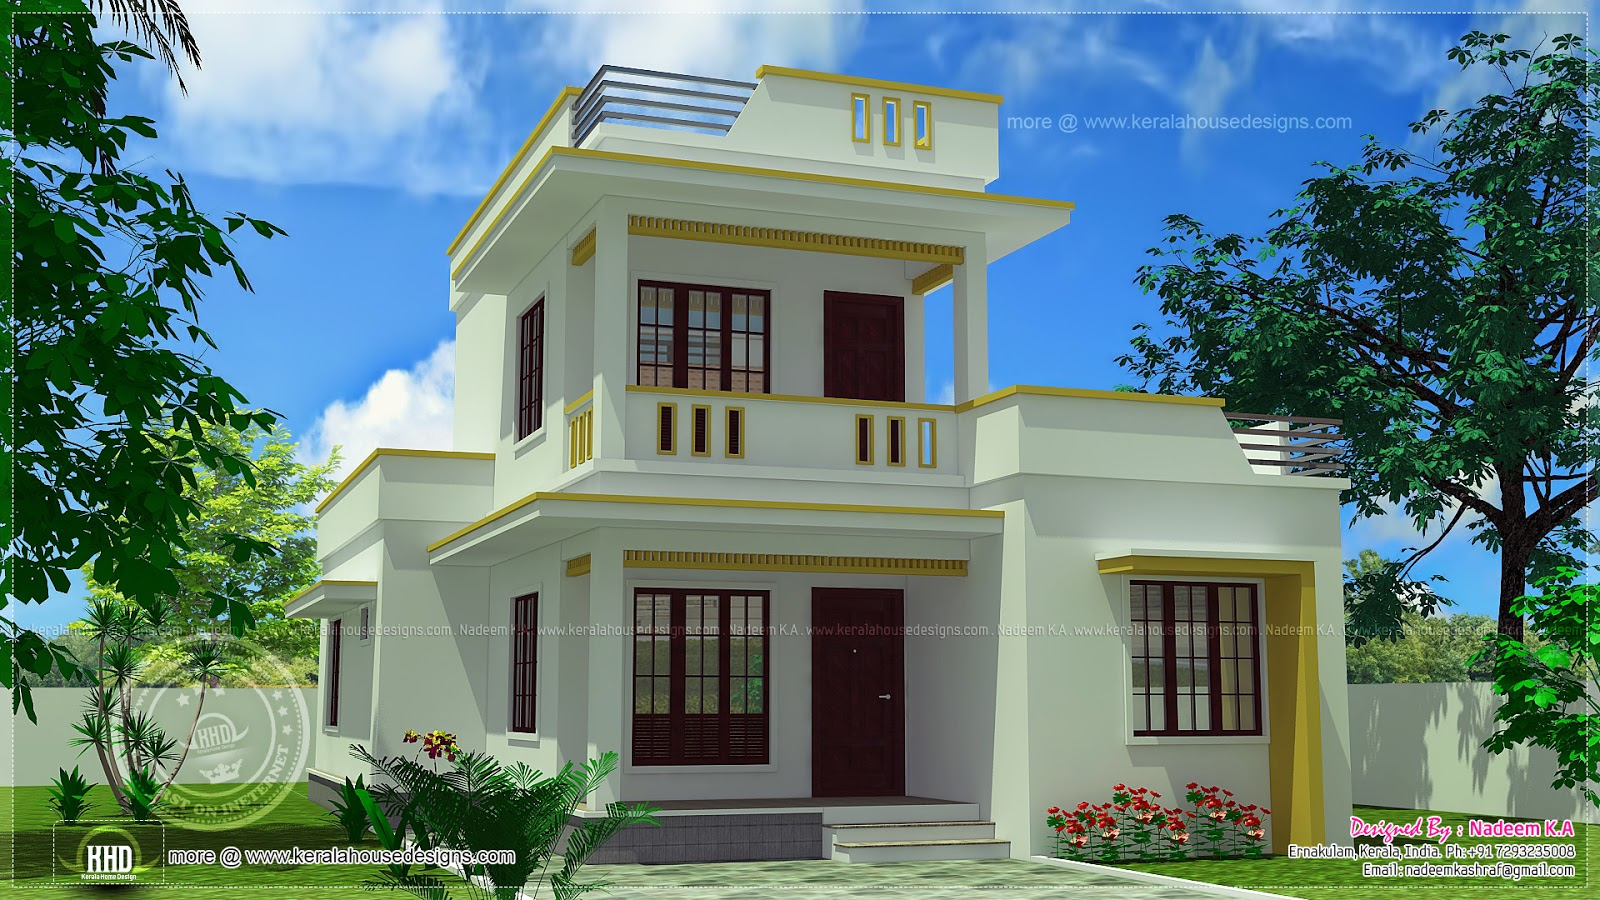 Simple flt roof home design in 1305 sq feet home kerala plans In home design